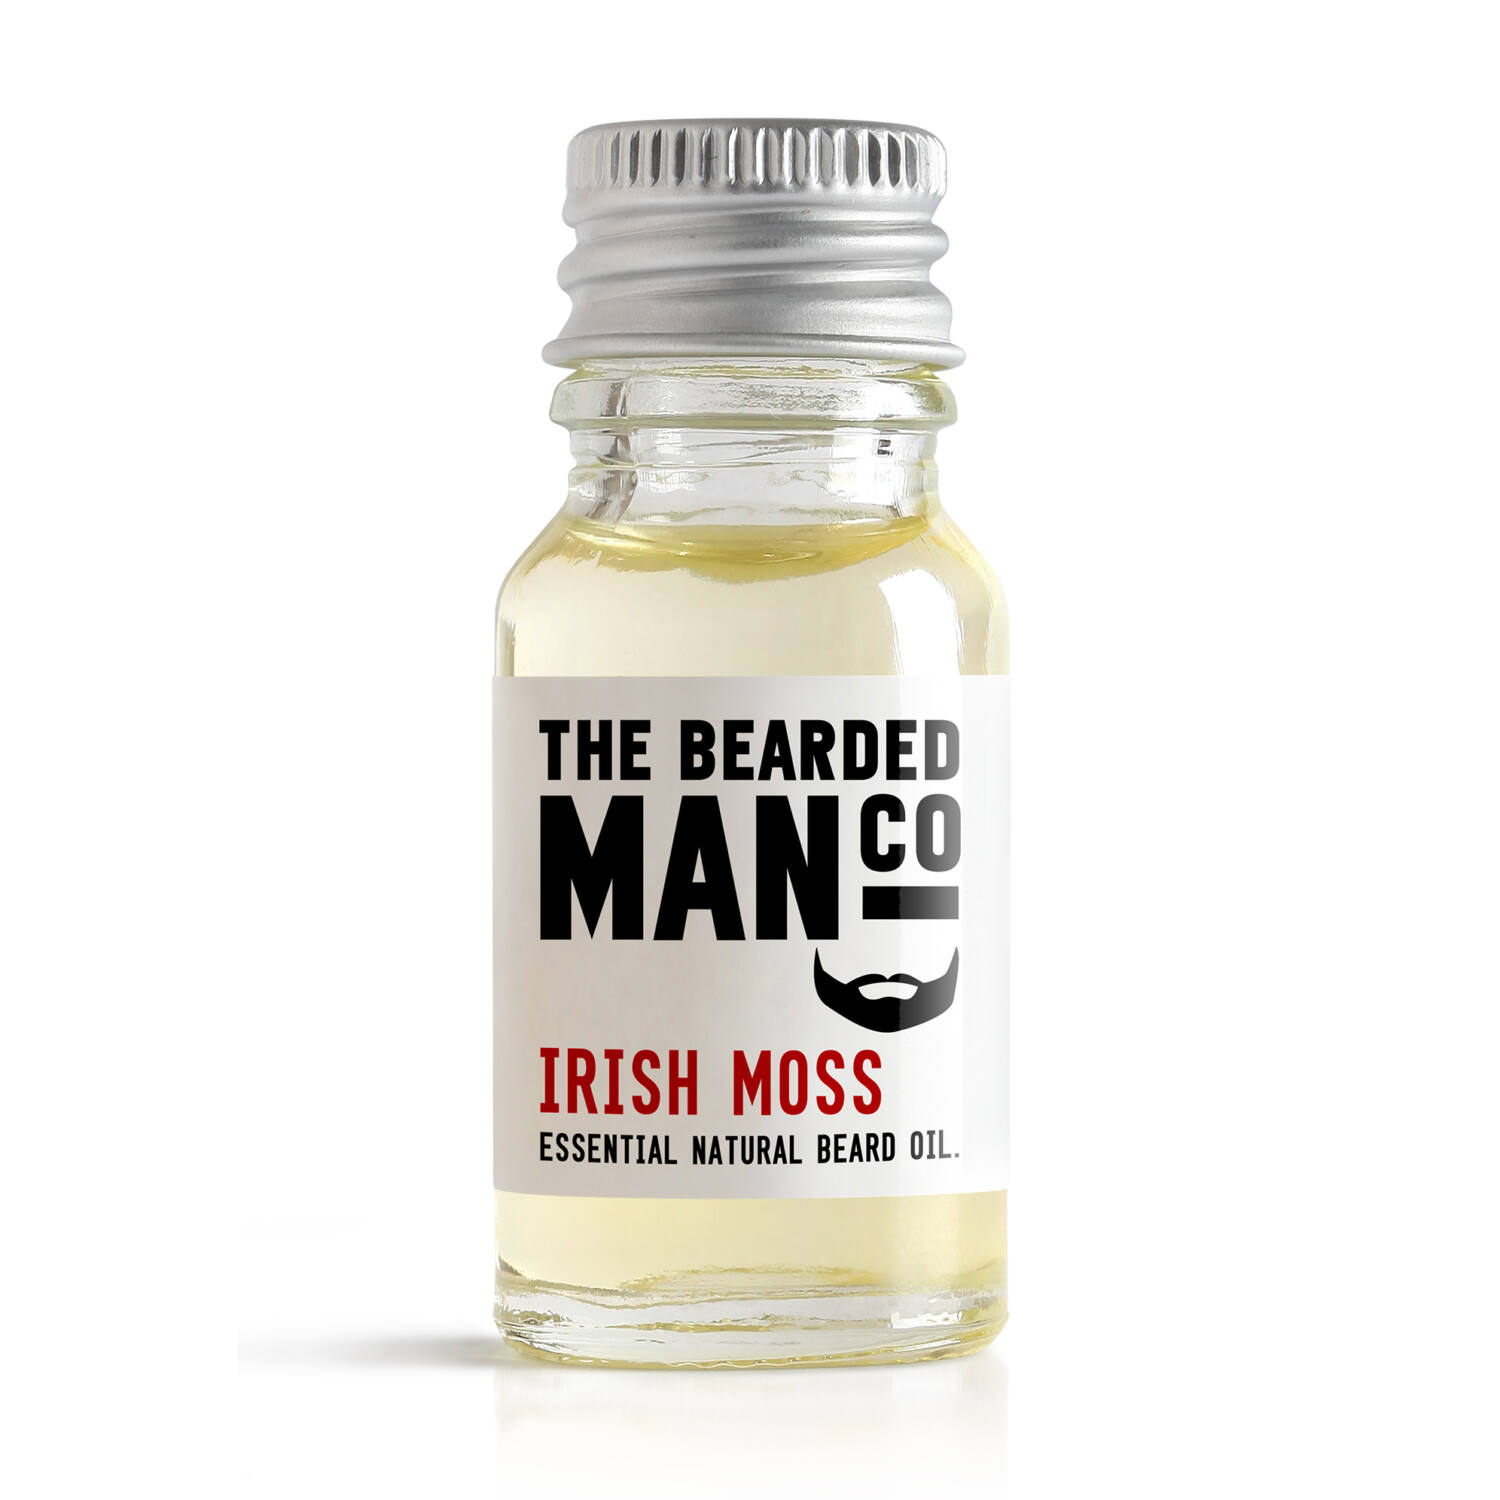 The Bearded Man Co. szakállolaj - Irish Moss